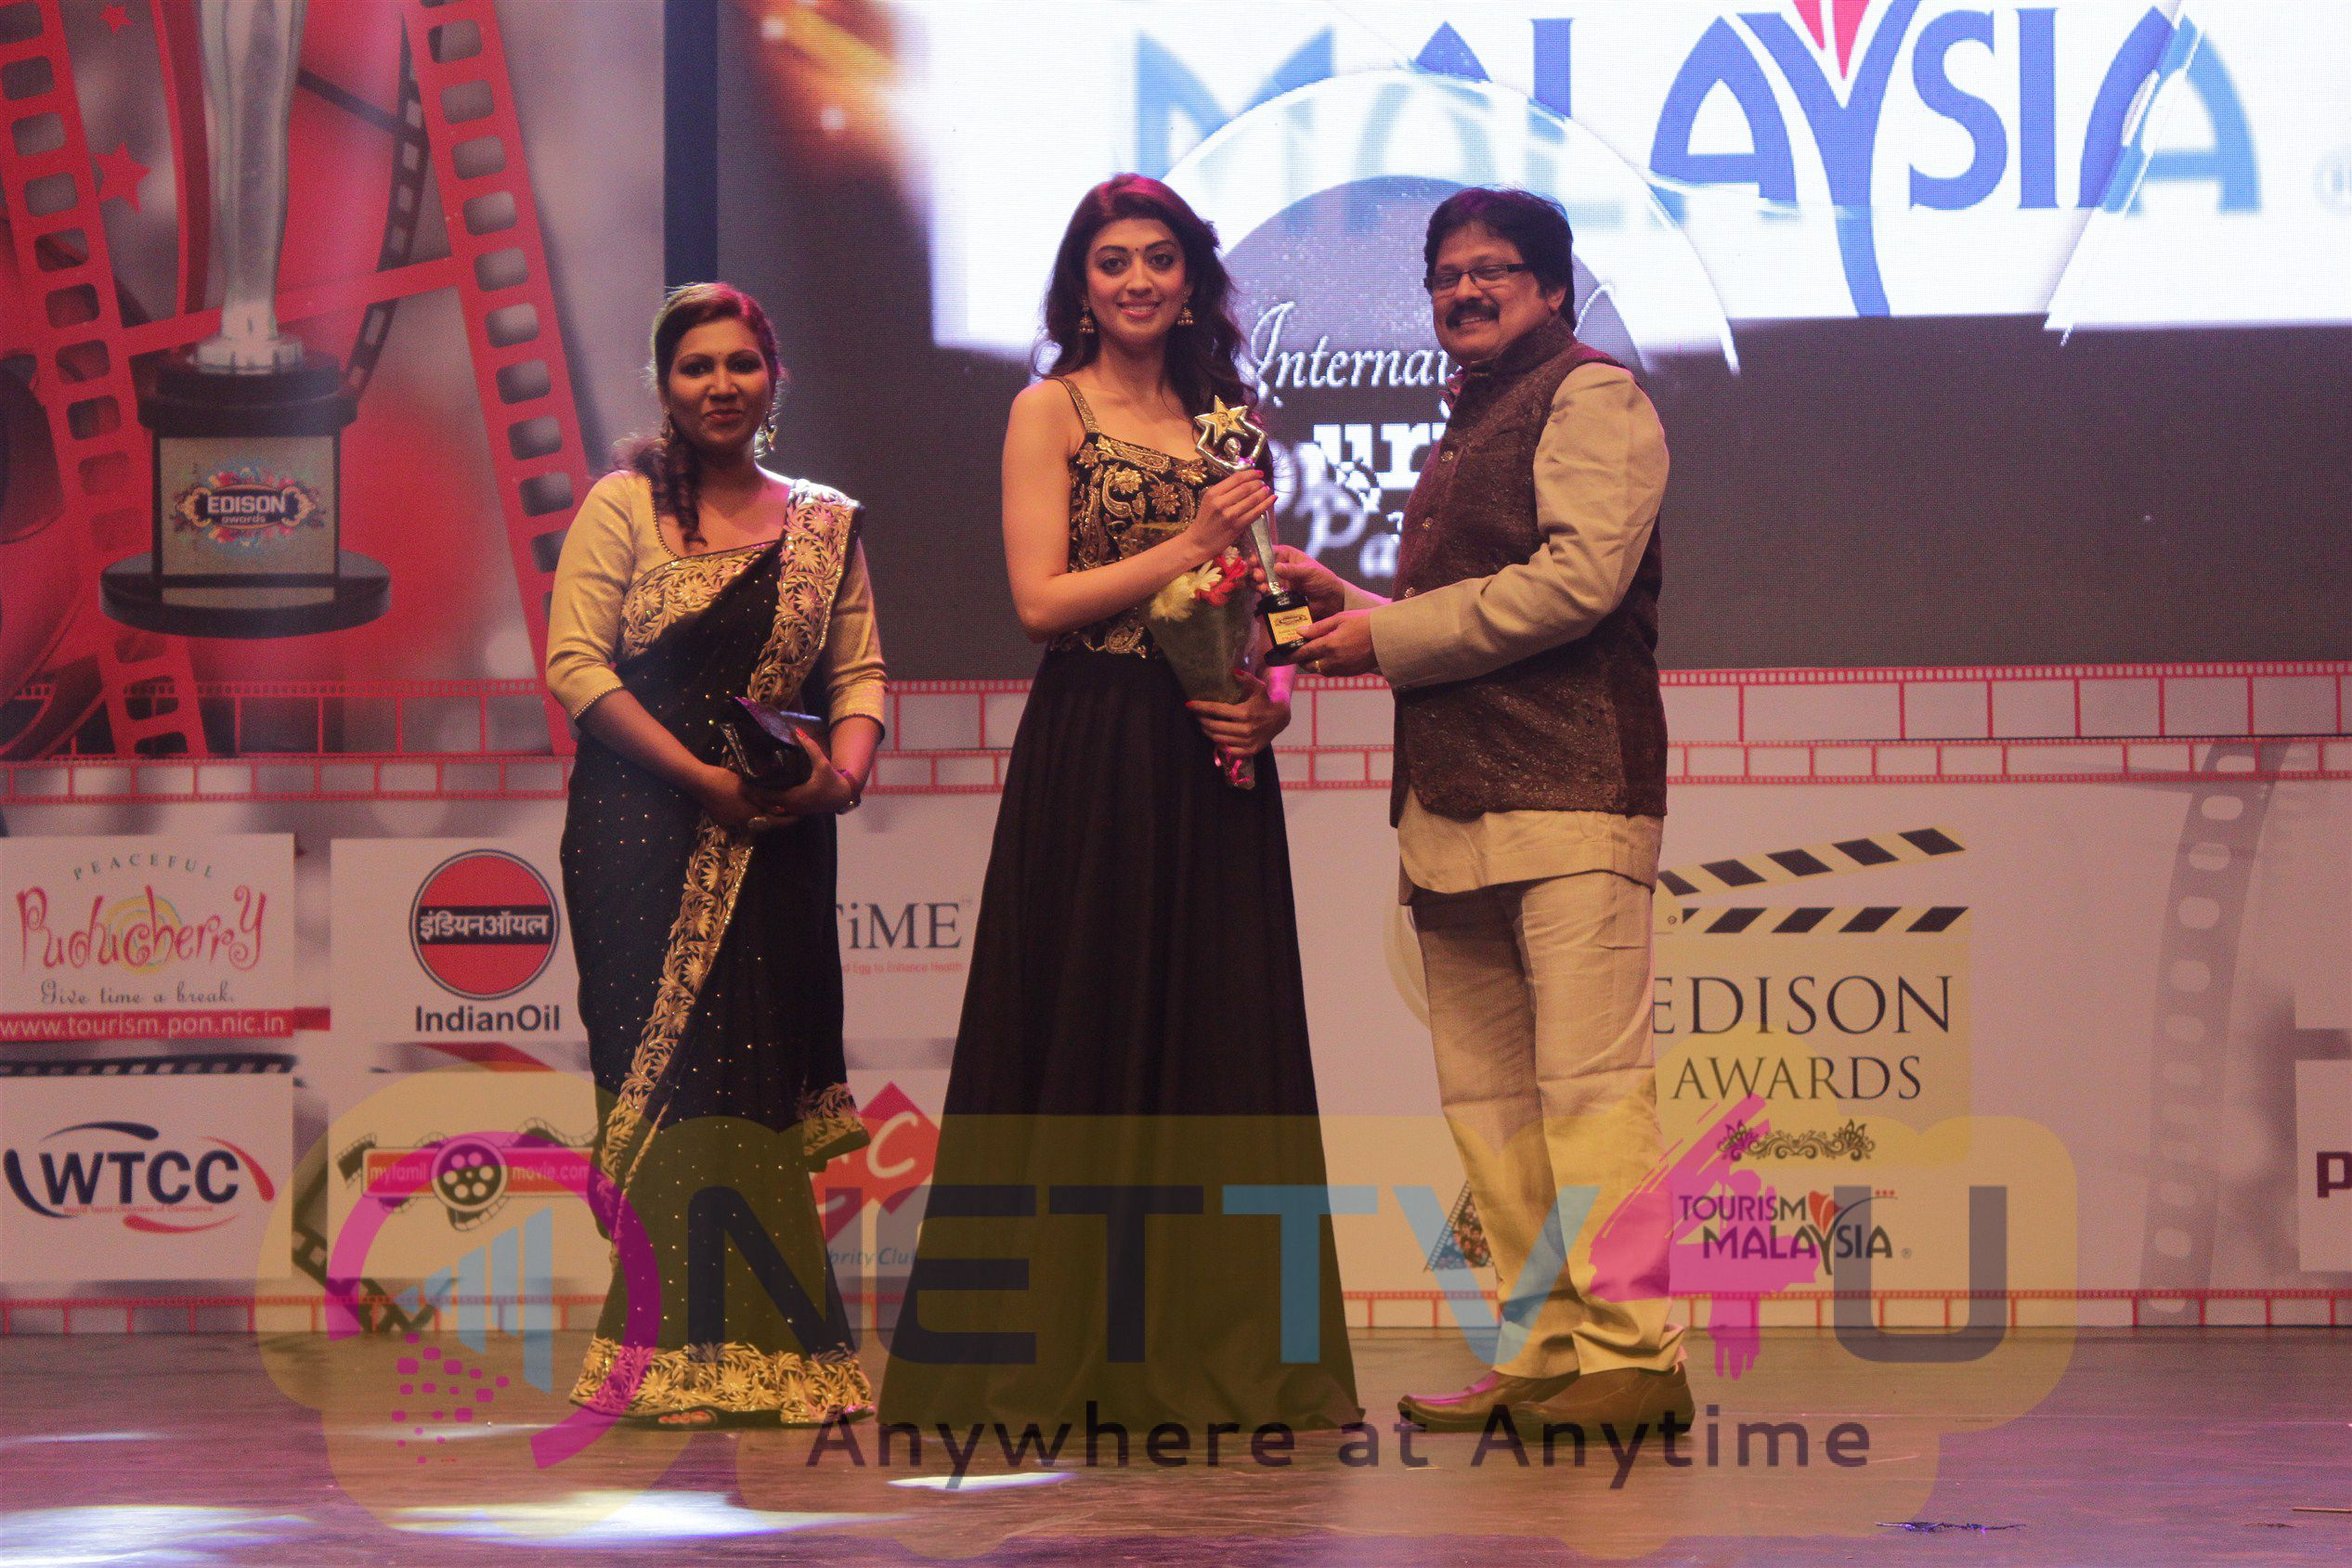 High Quality Pictures Of Edison Awards Tamil Gallery